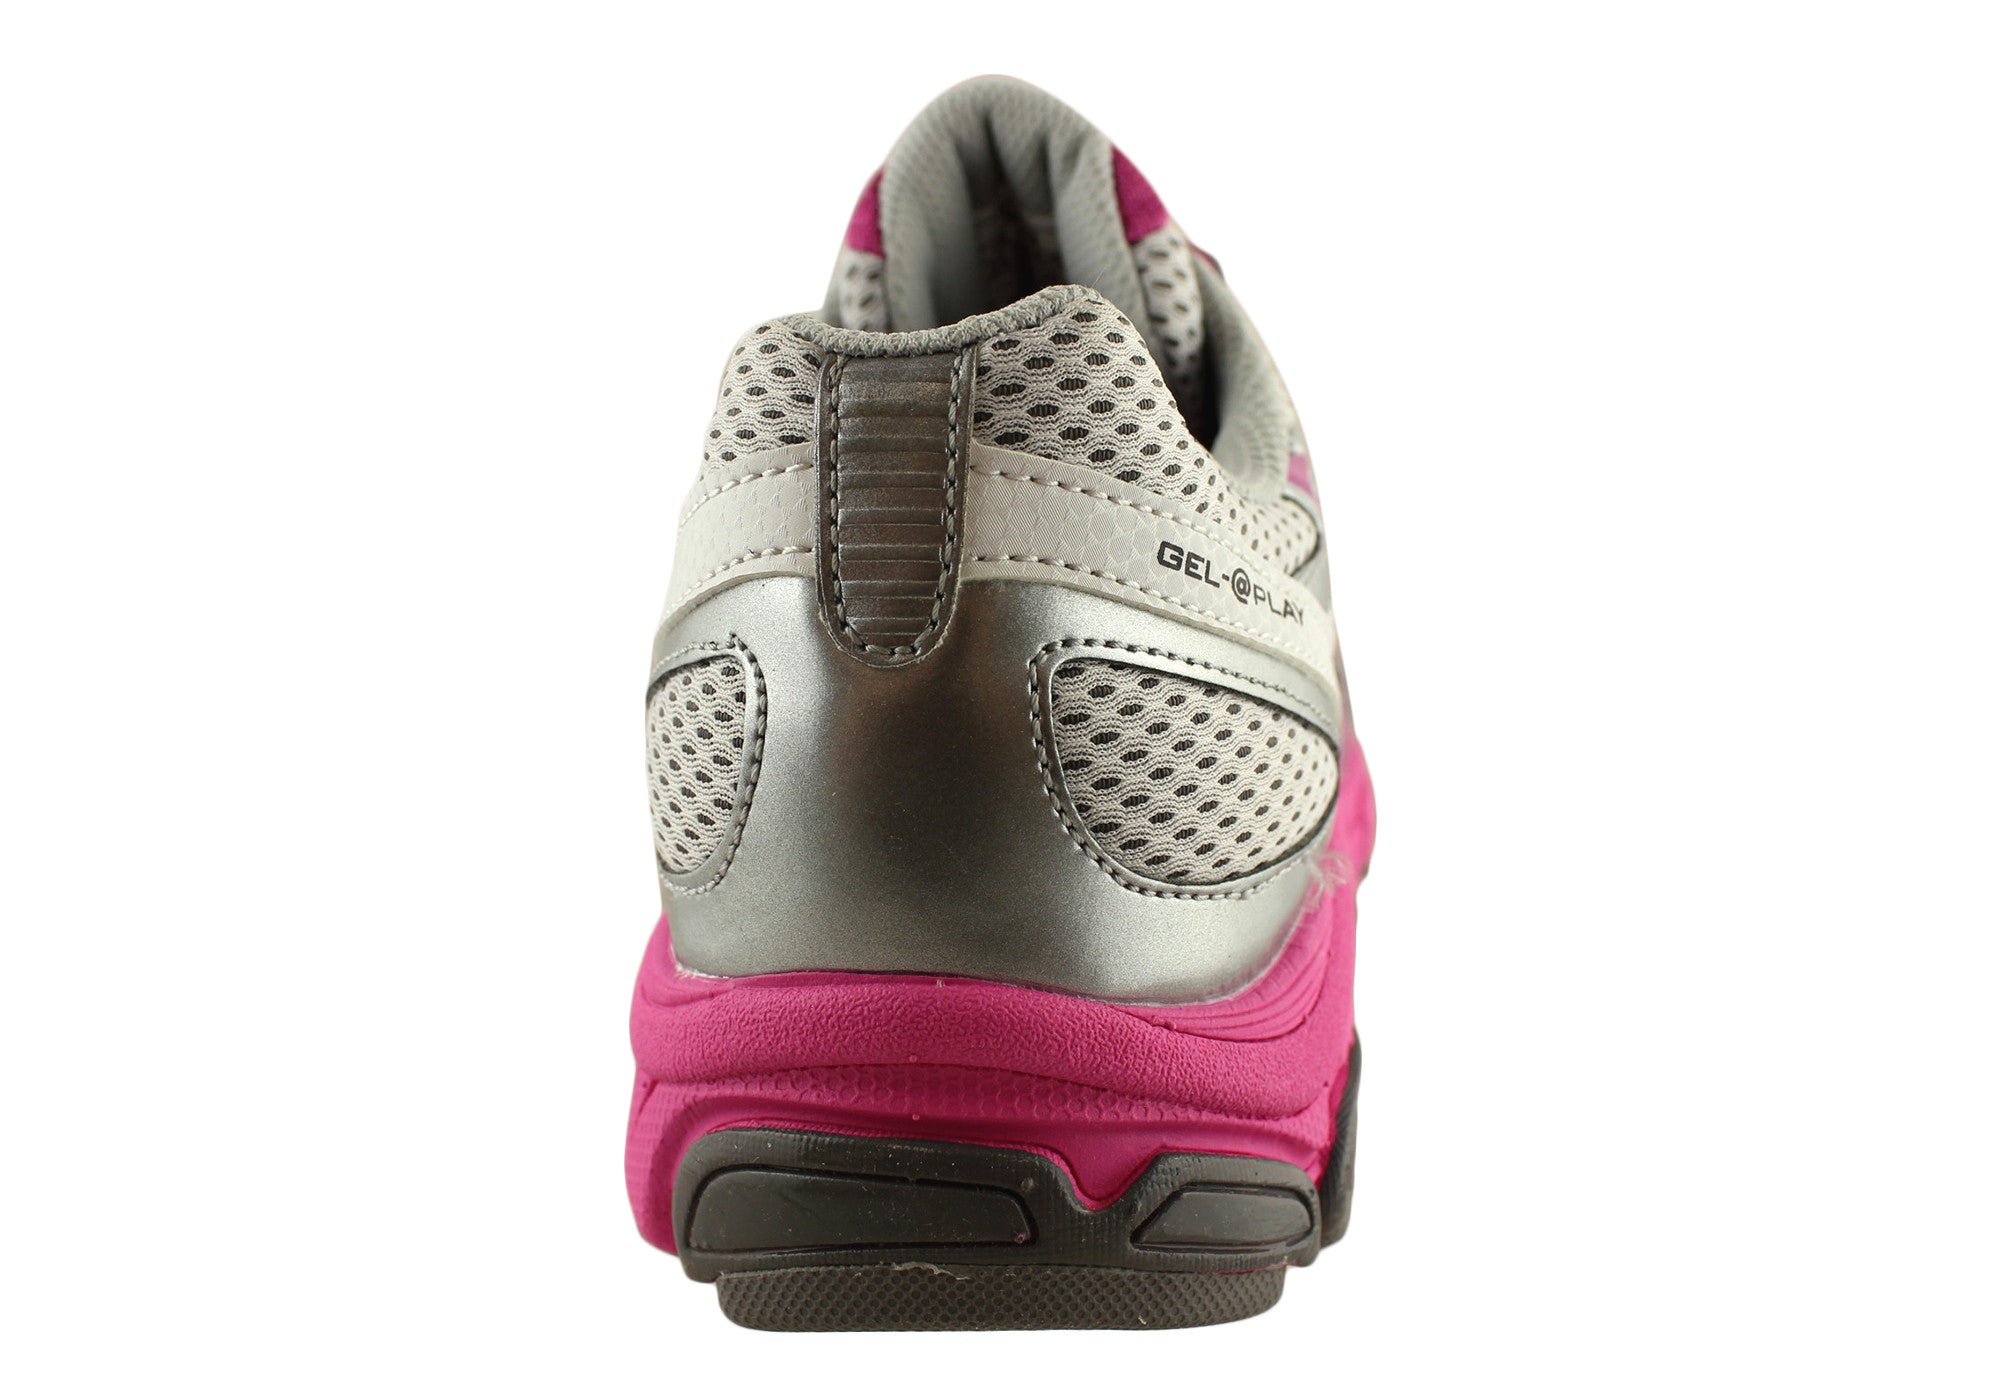 Asics Gel Play Kids Older Girls Sneakers